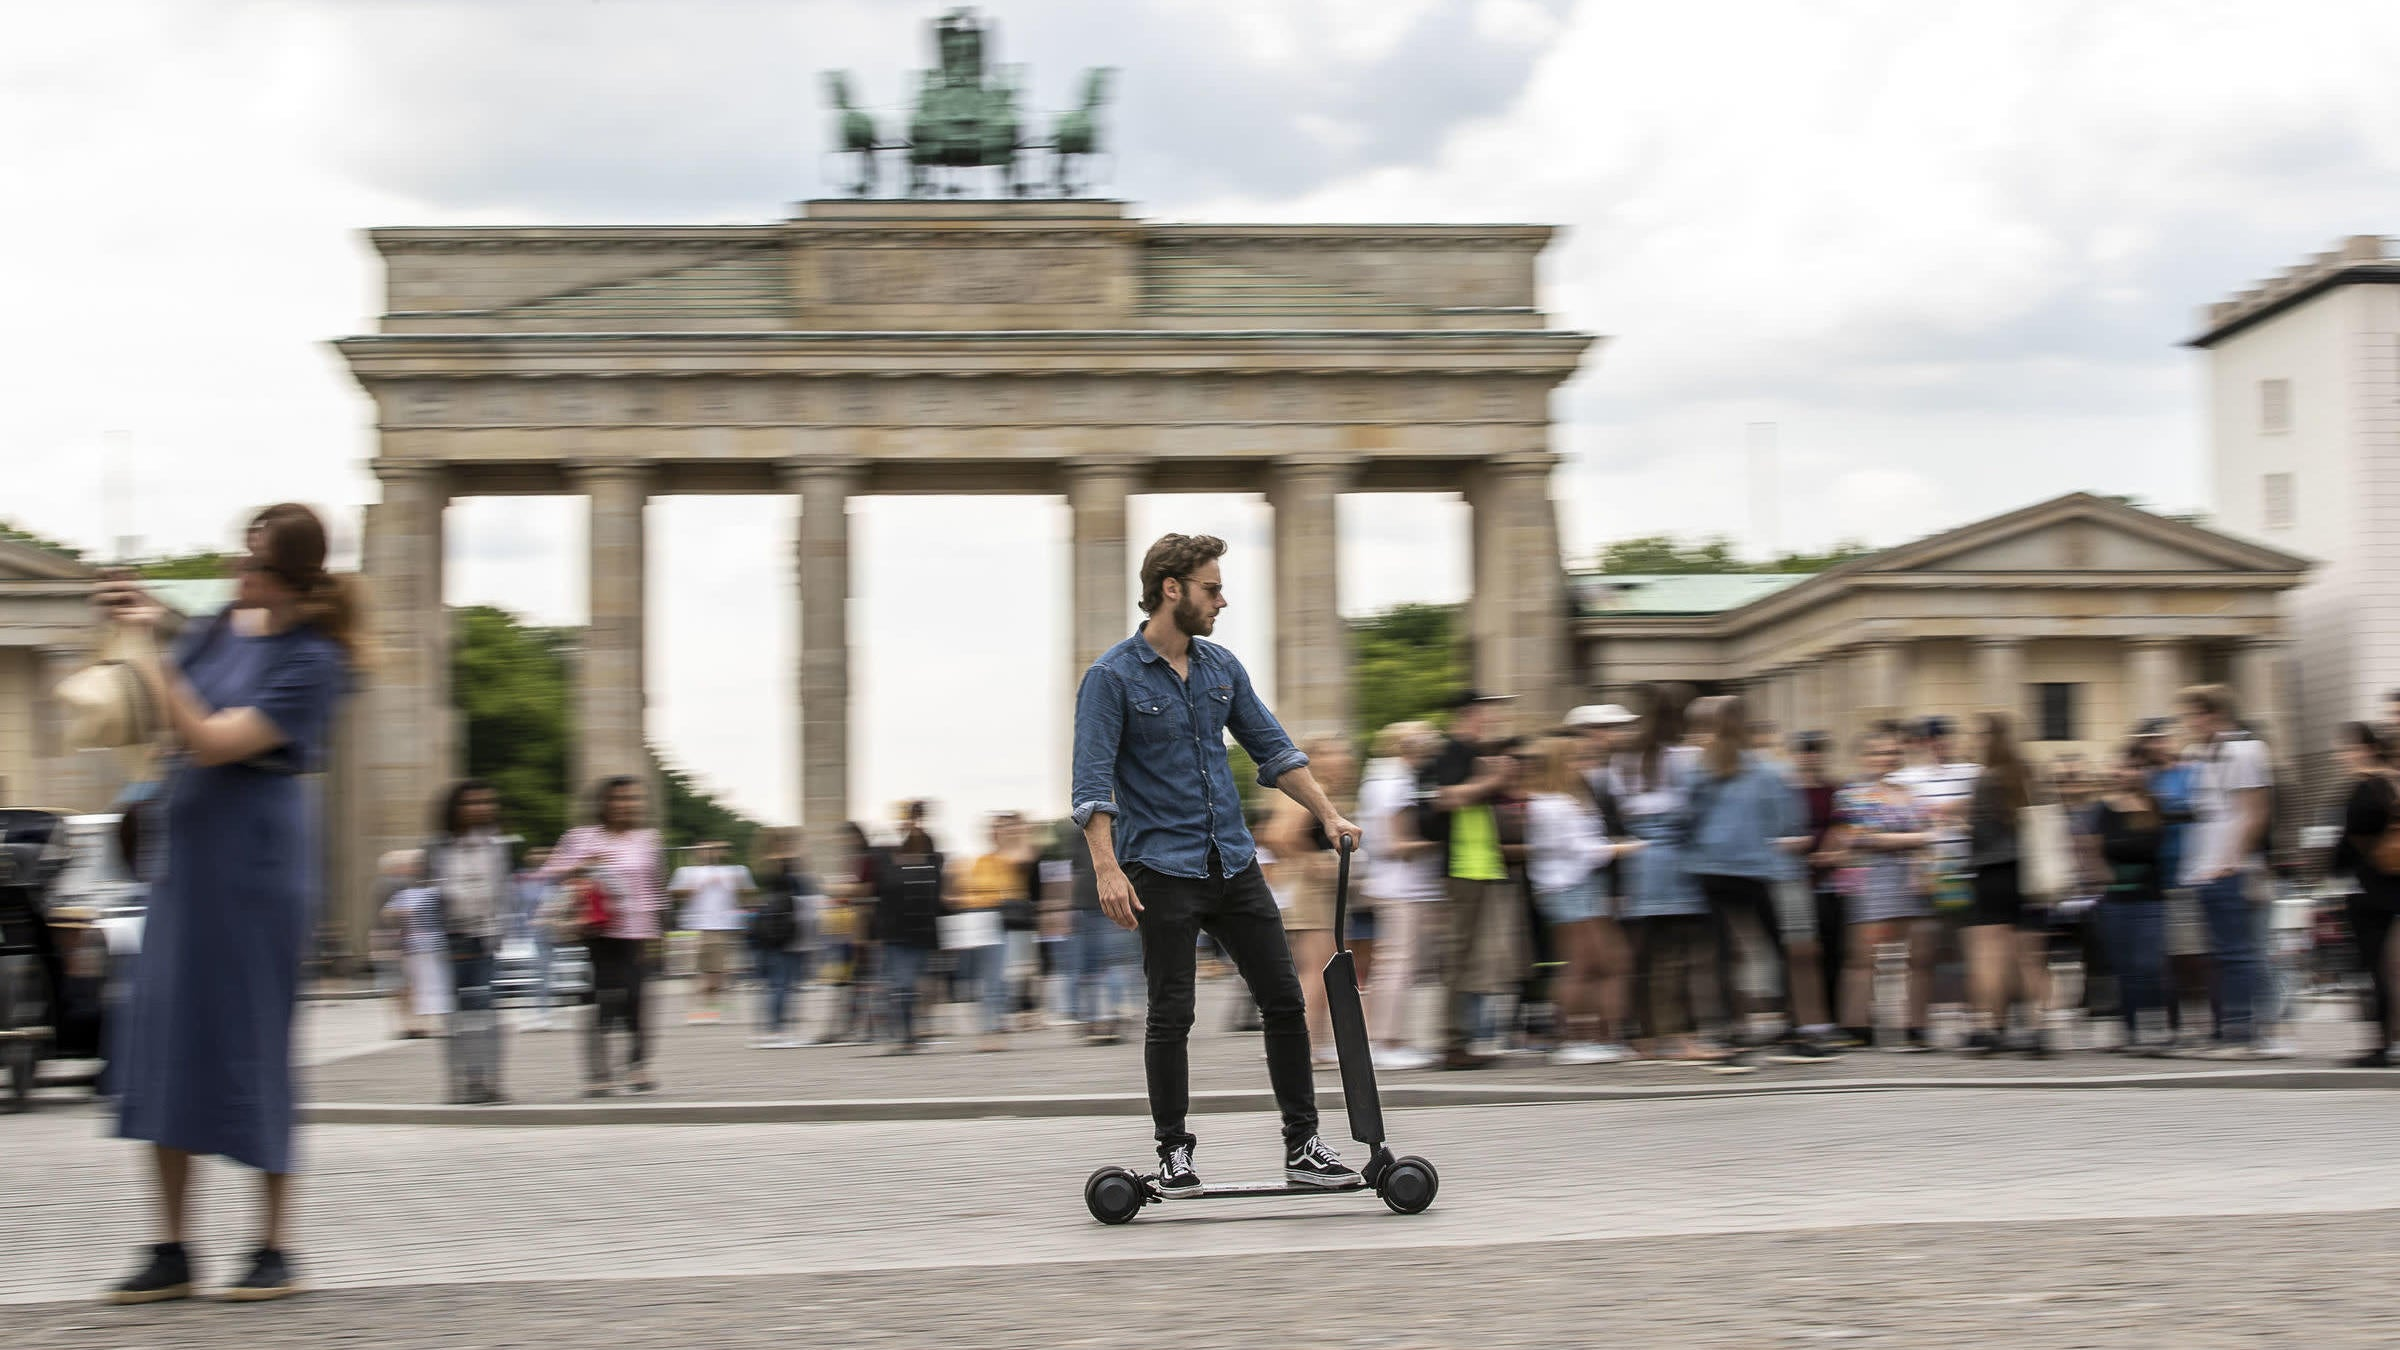 Audi Wants To Sell You An Electric Scooter You Can Charge In Your Trunk